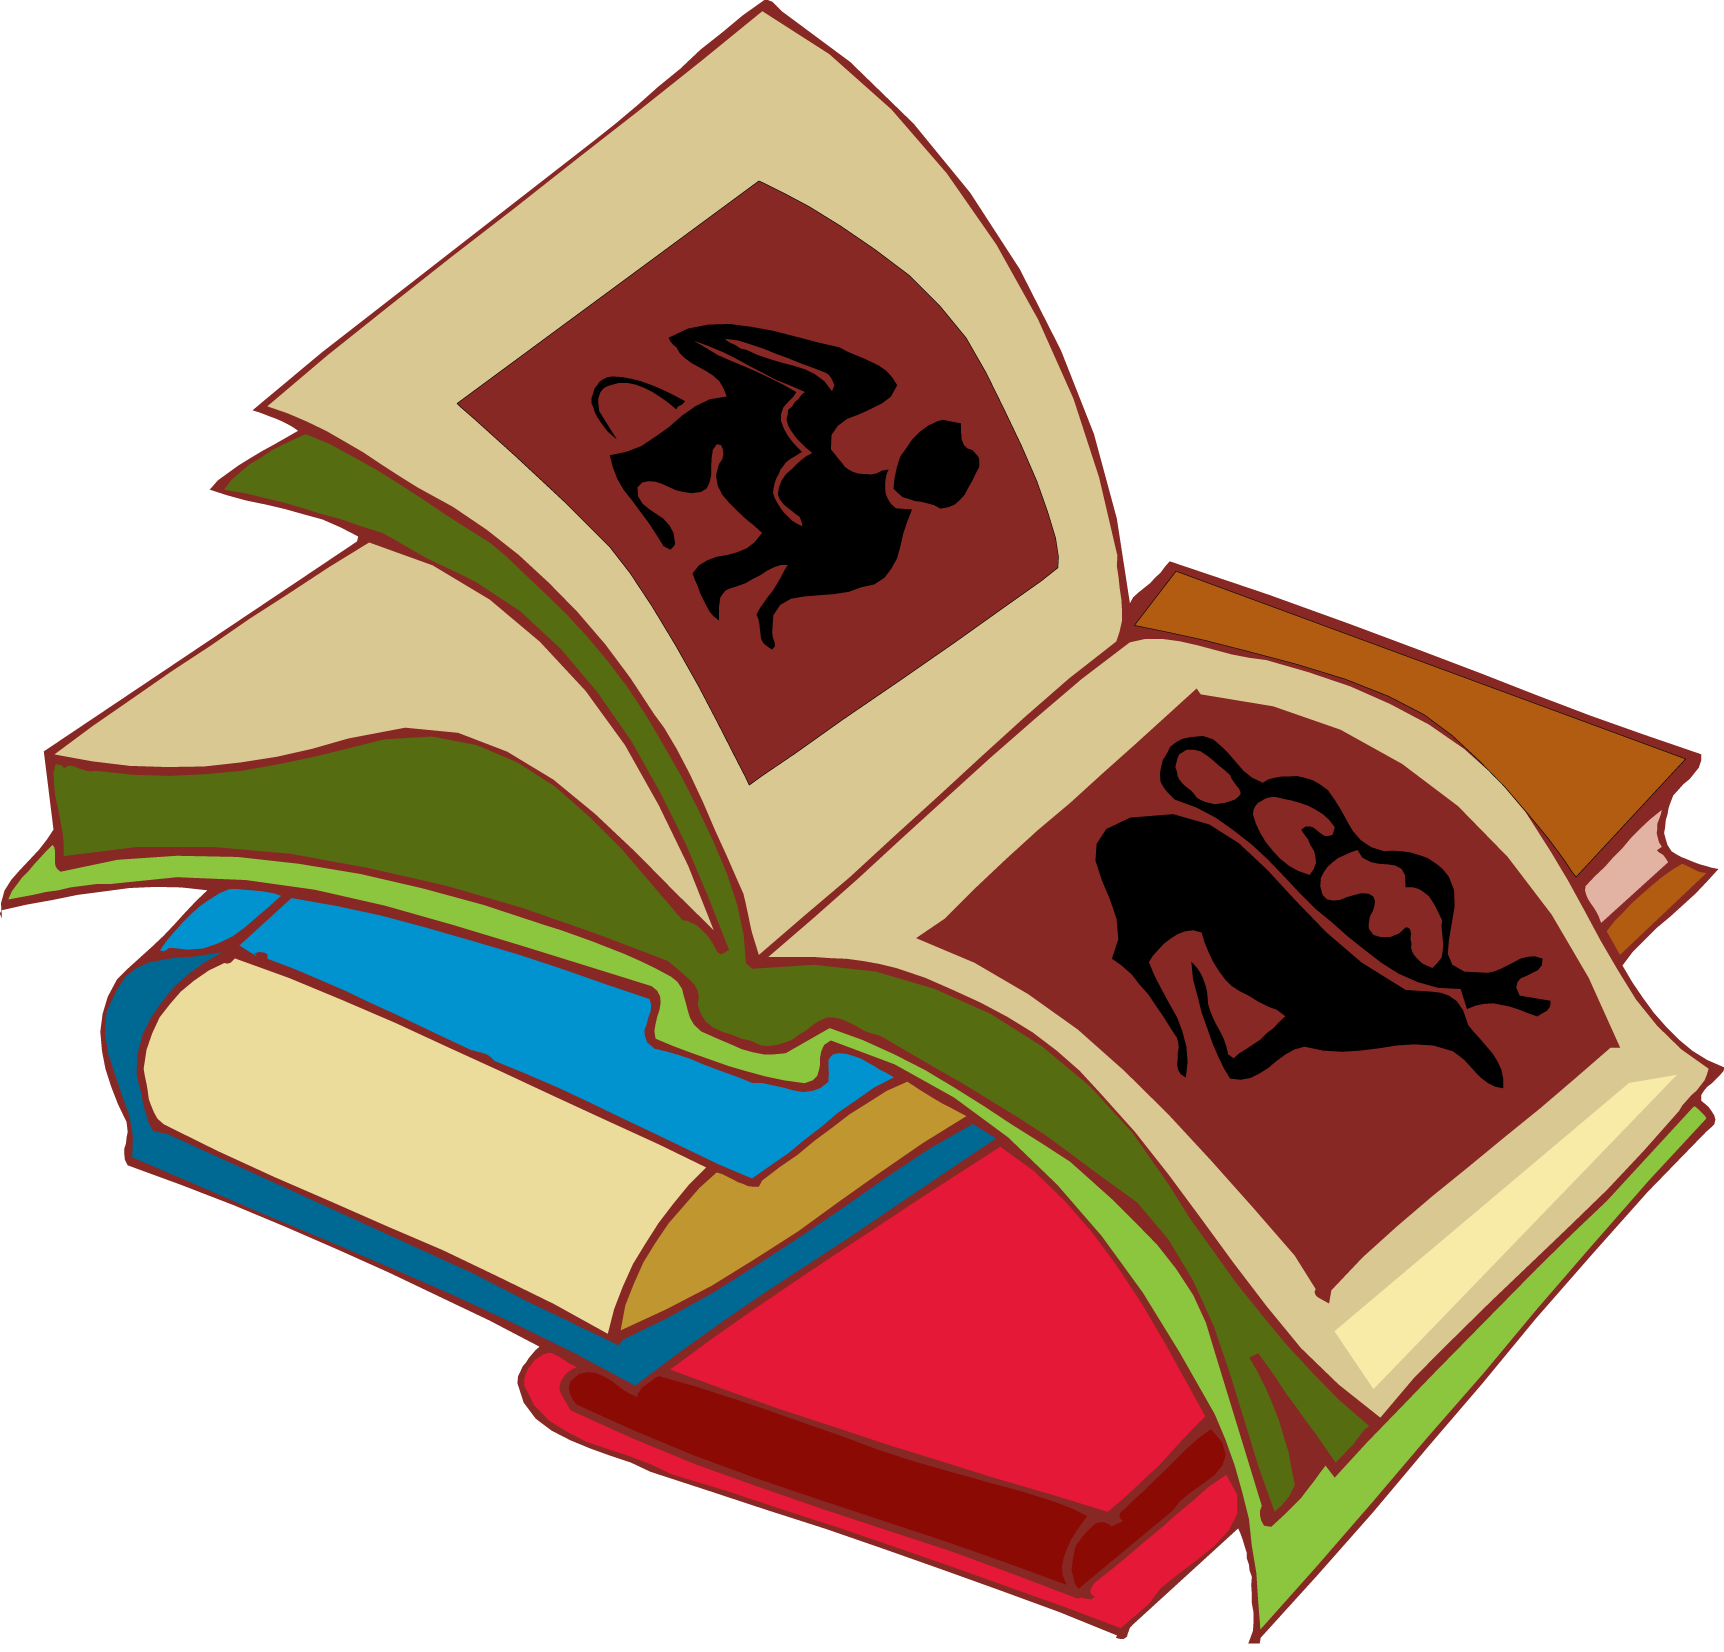 image transparent download Free stack of books. Row clipart